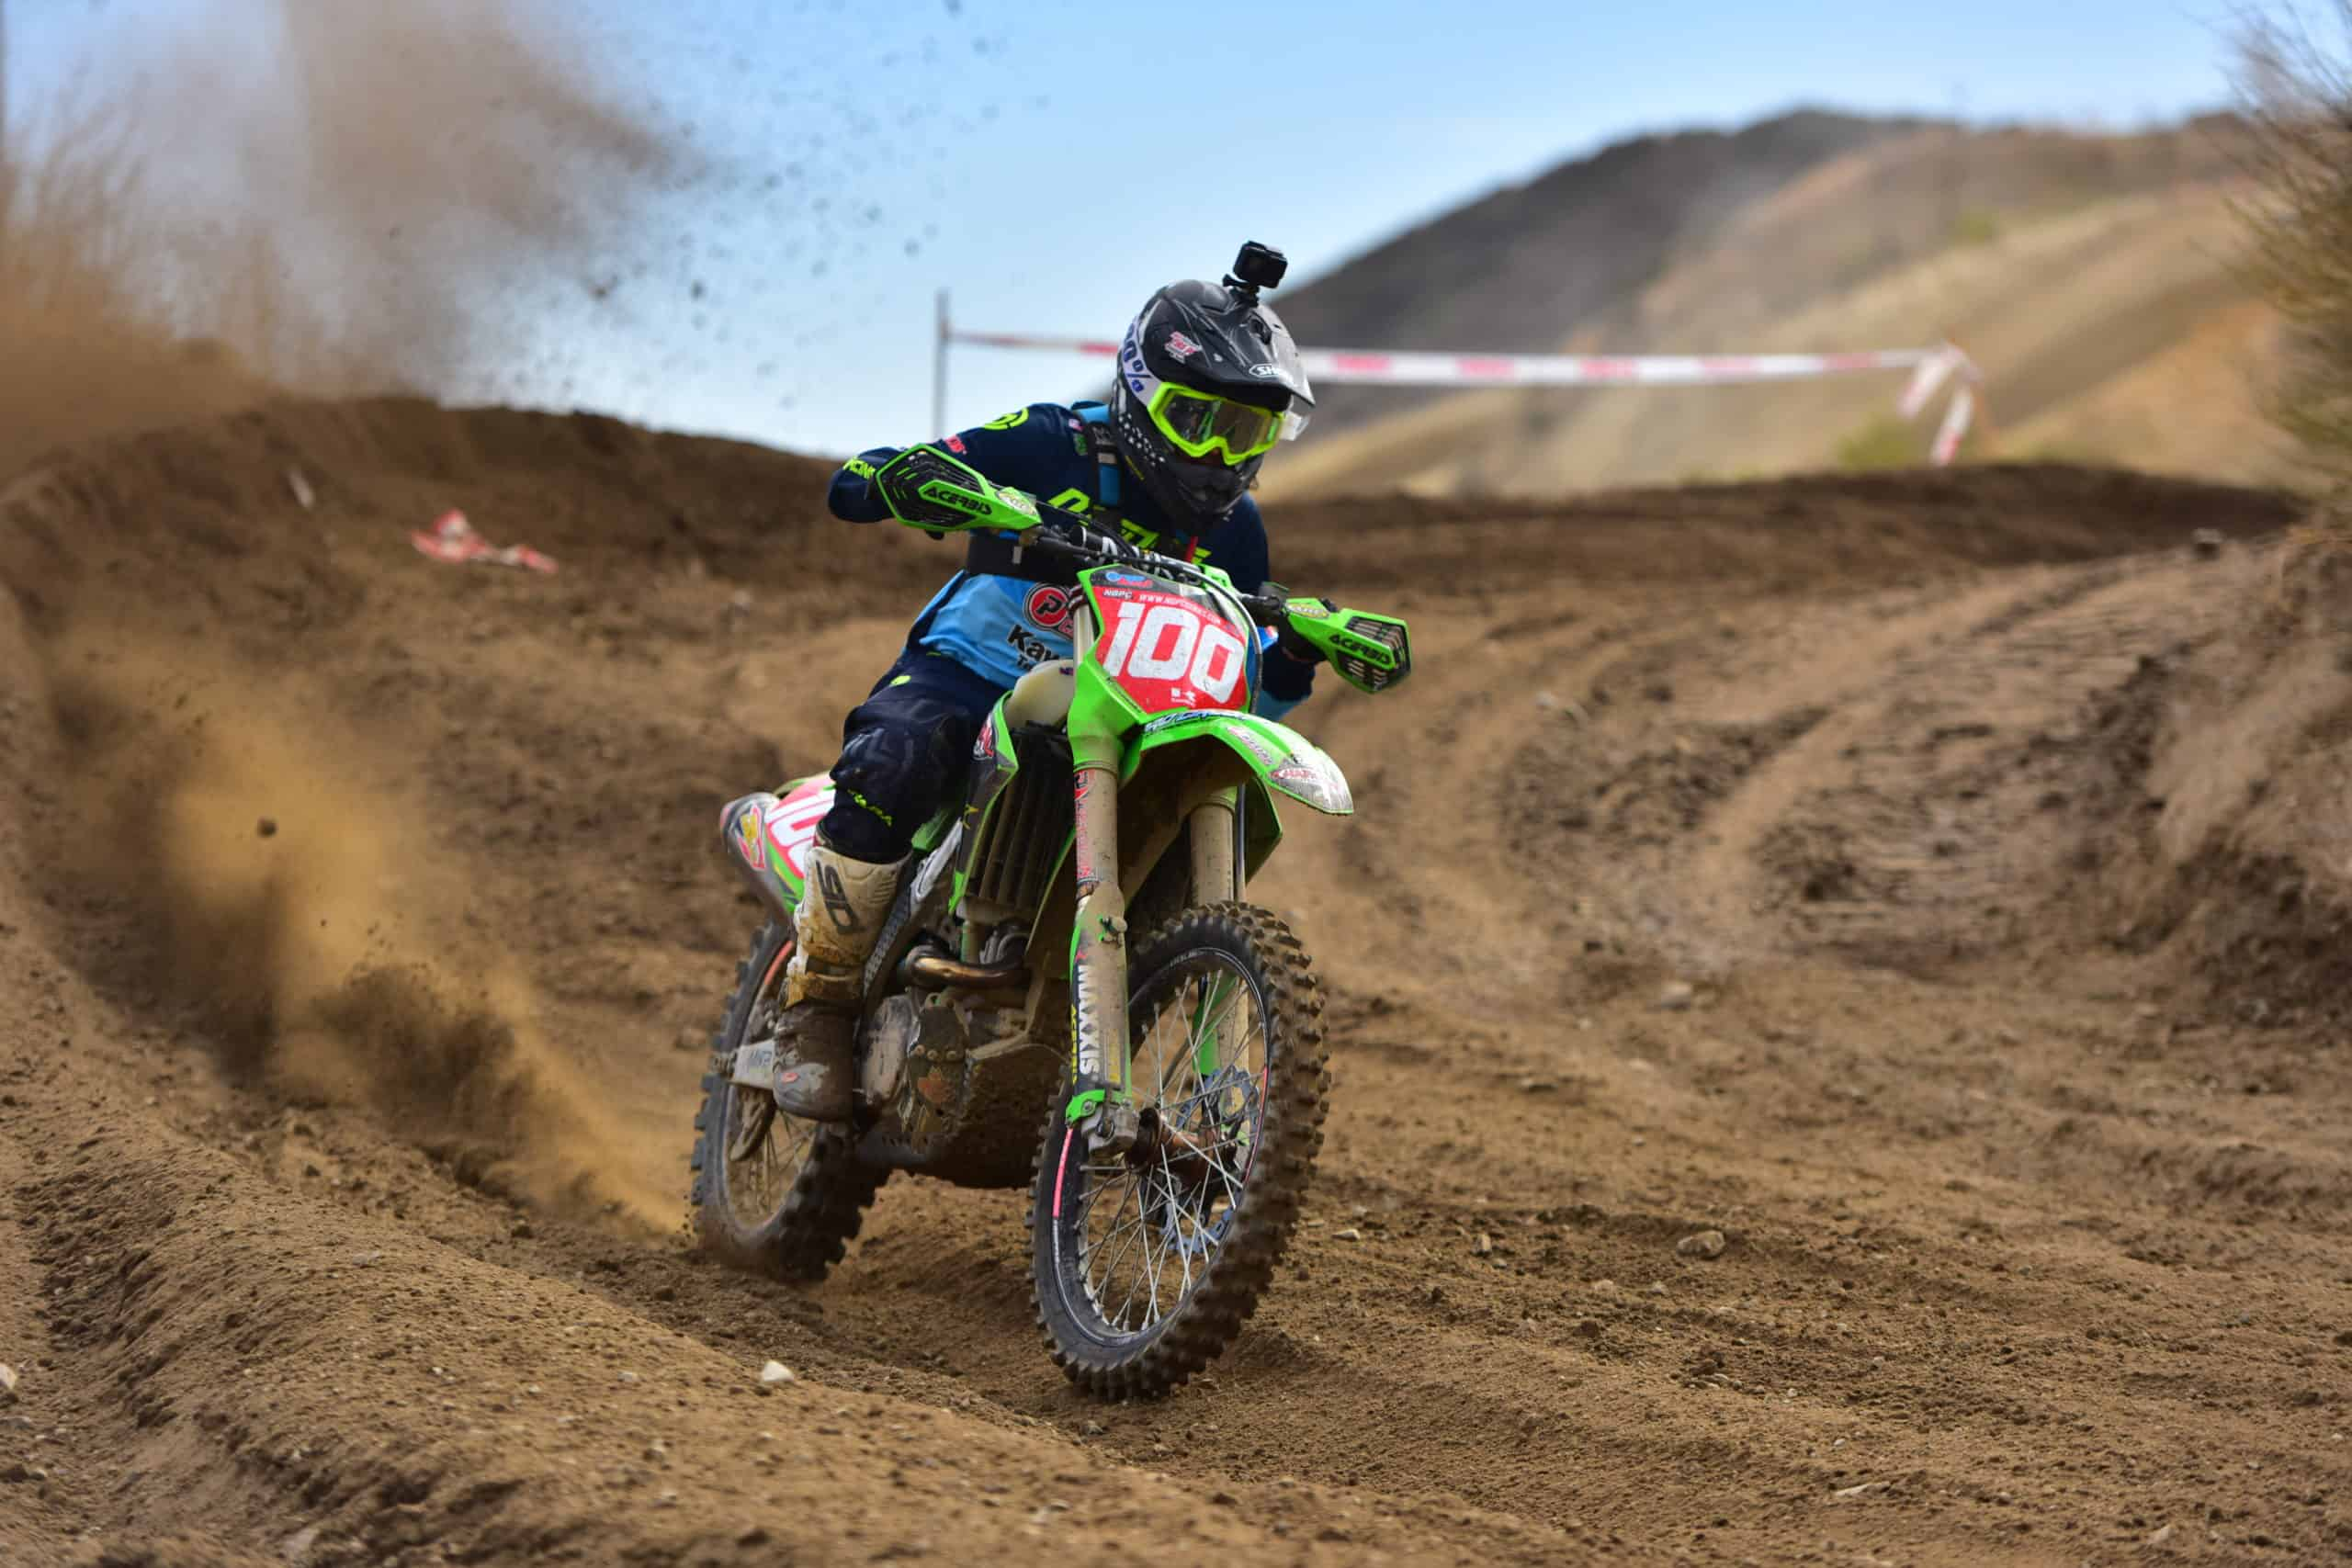 zach bell riding his kx450 at the 2020 glen helen 2 ngpc race